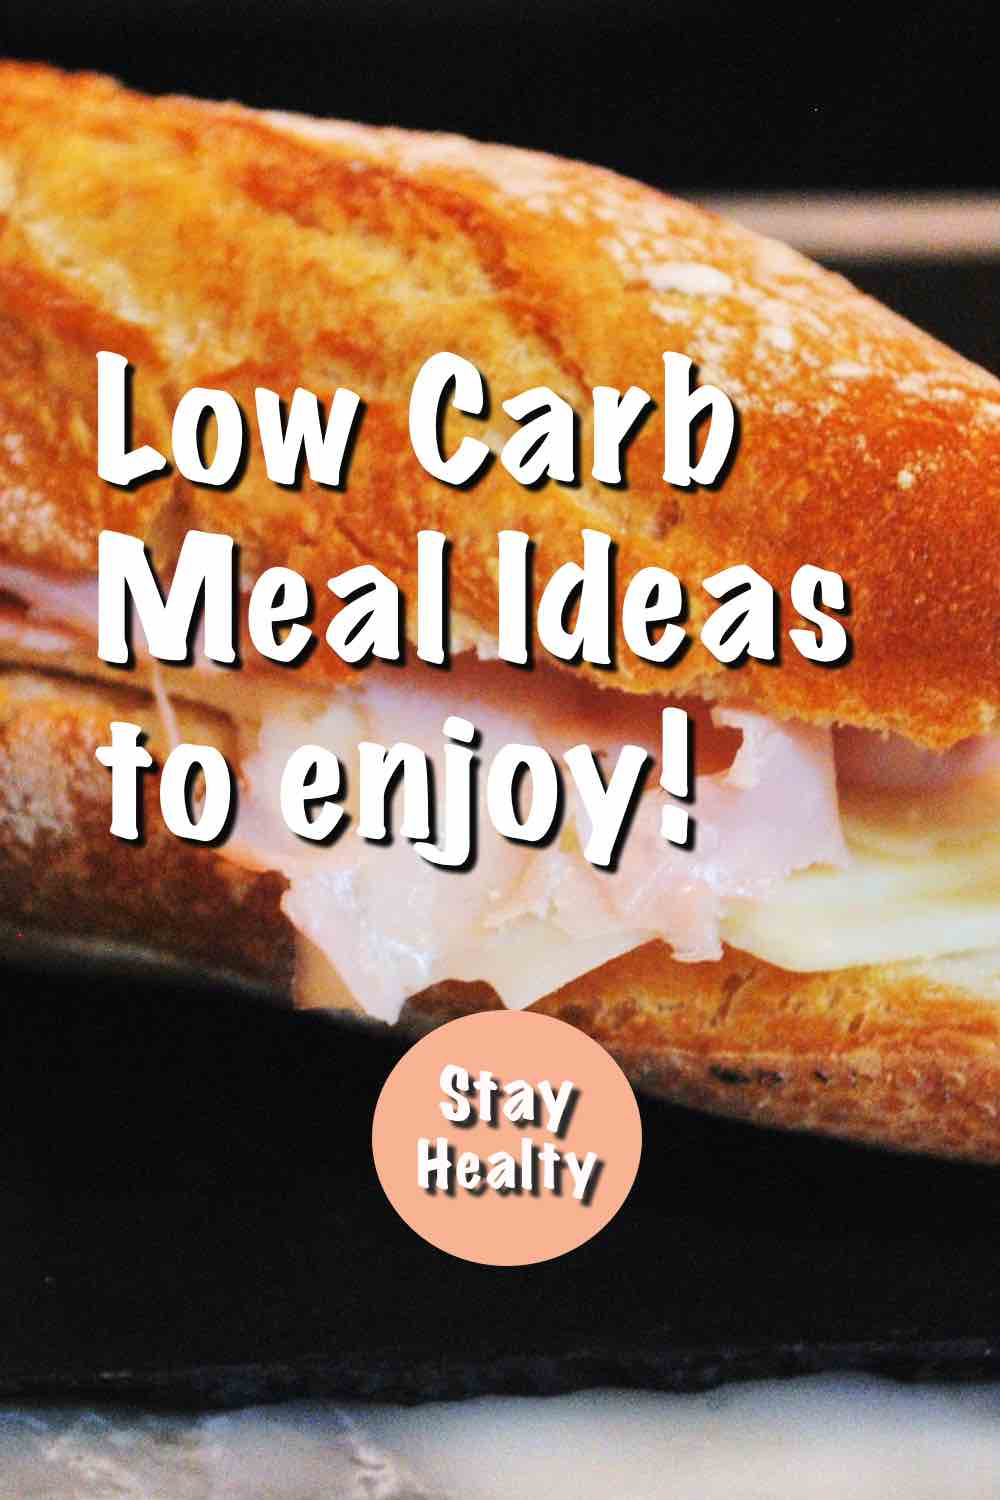 A low carb meal idea.